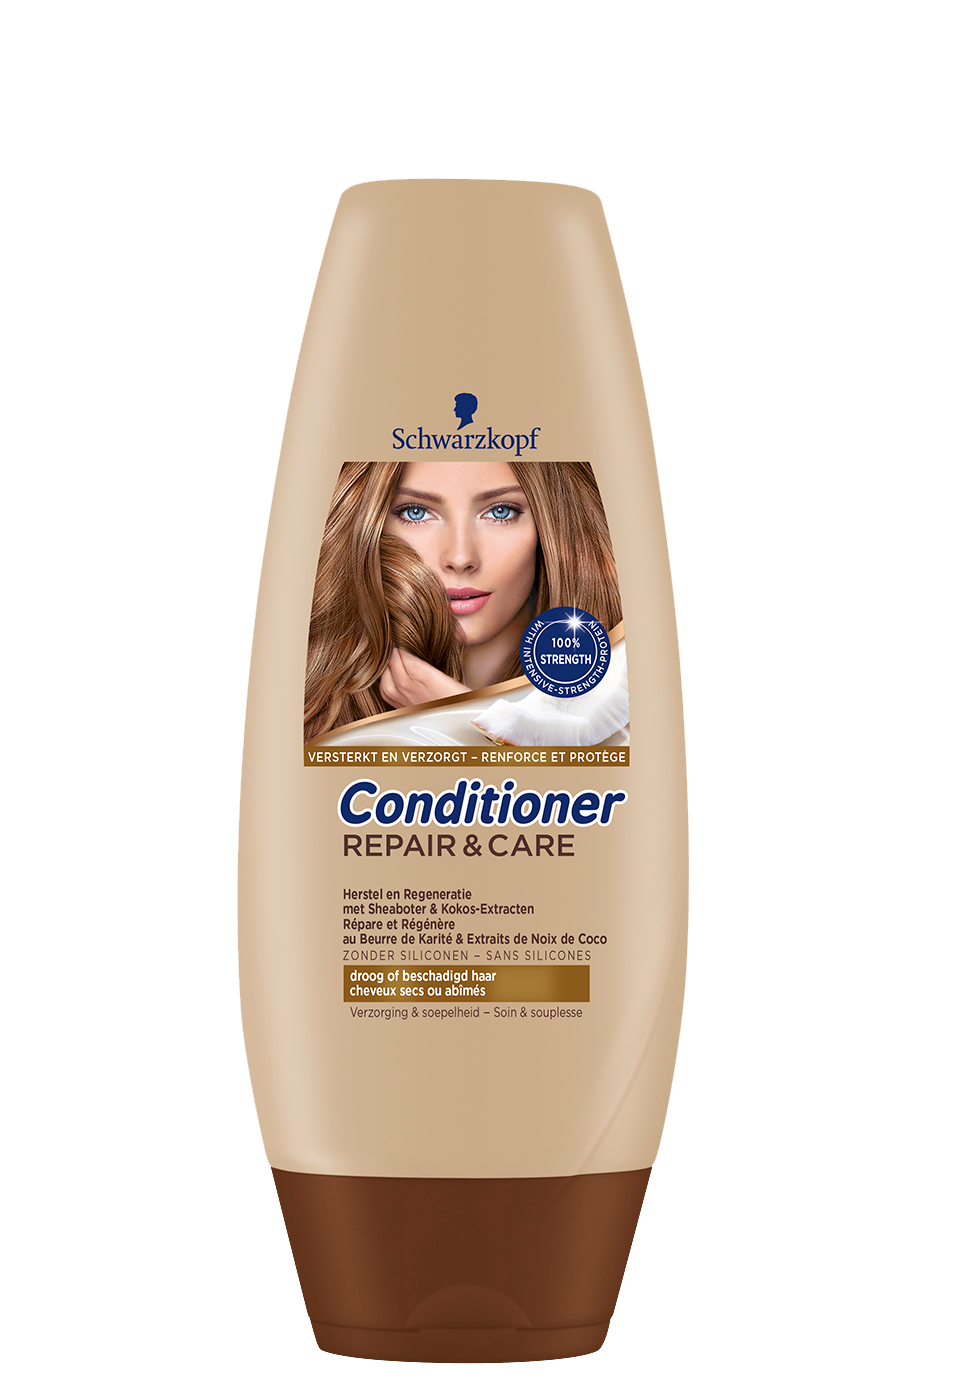 970x1400_Packs_SK_Conditioner-Repair-Care